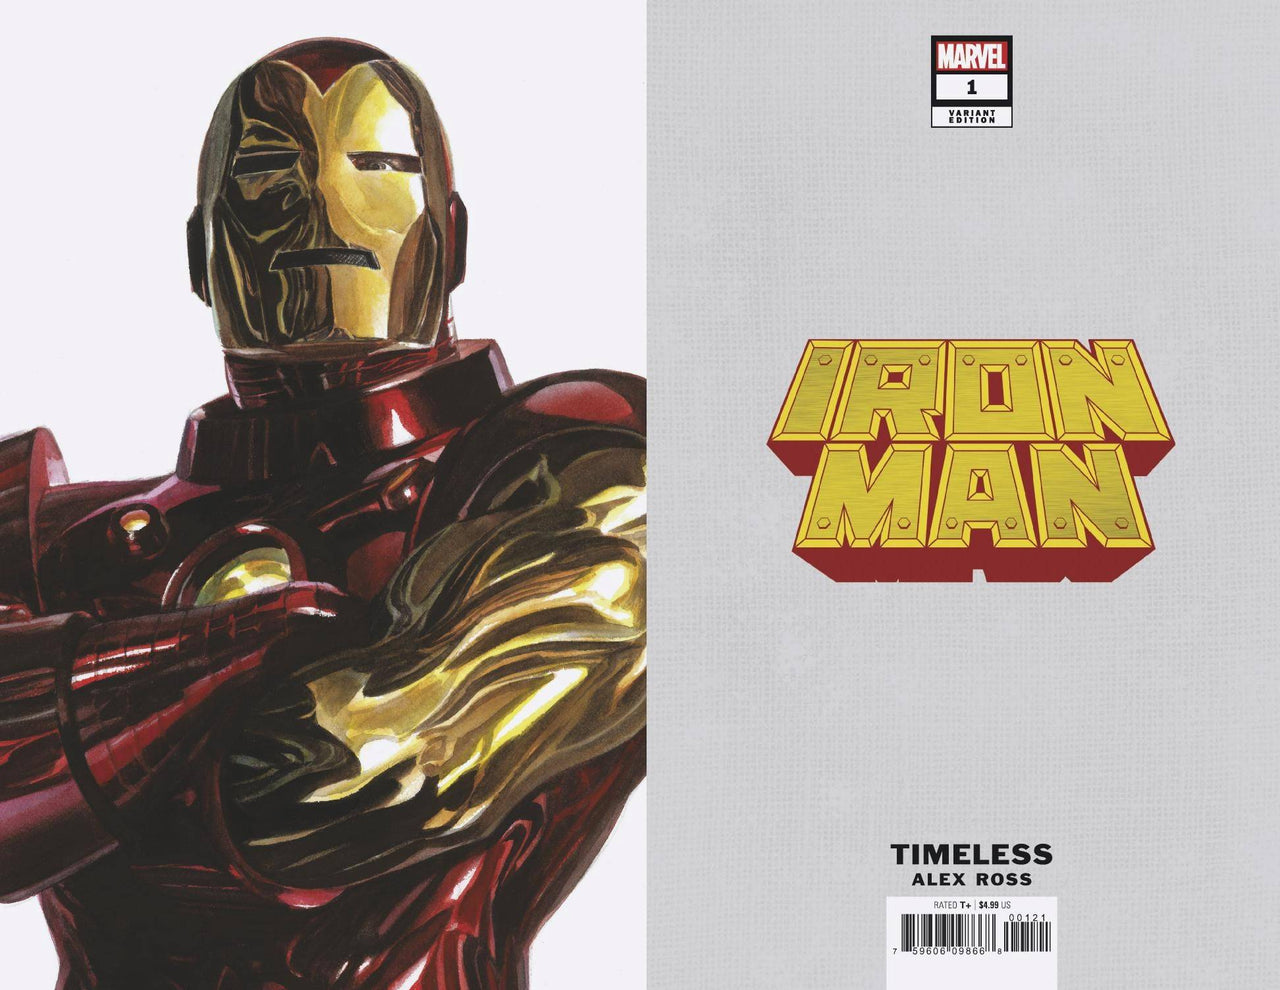 Iron Man Timeless Virgin Variant issue #1 CGC 9.8 - SHIPS 10/25/20